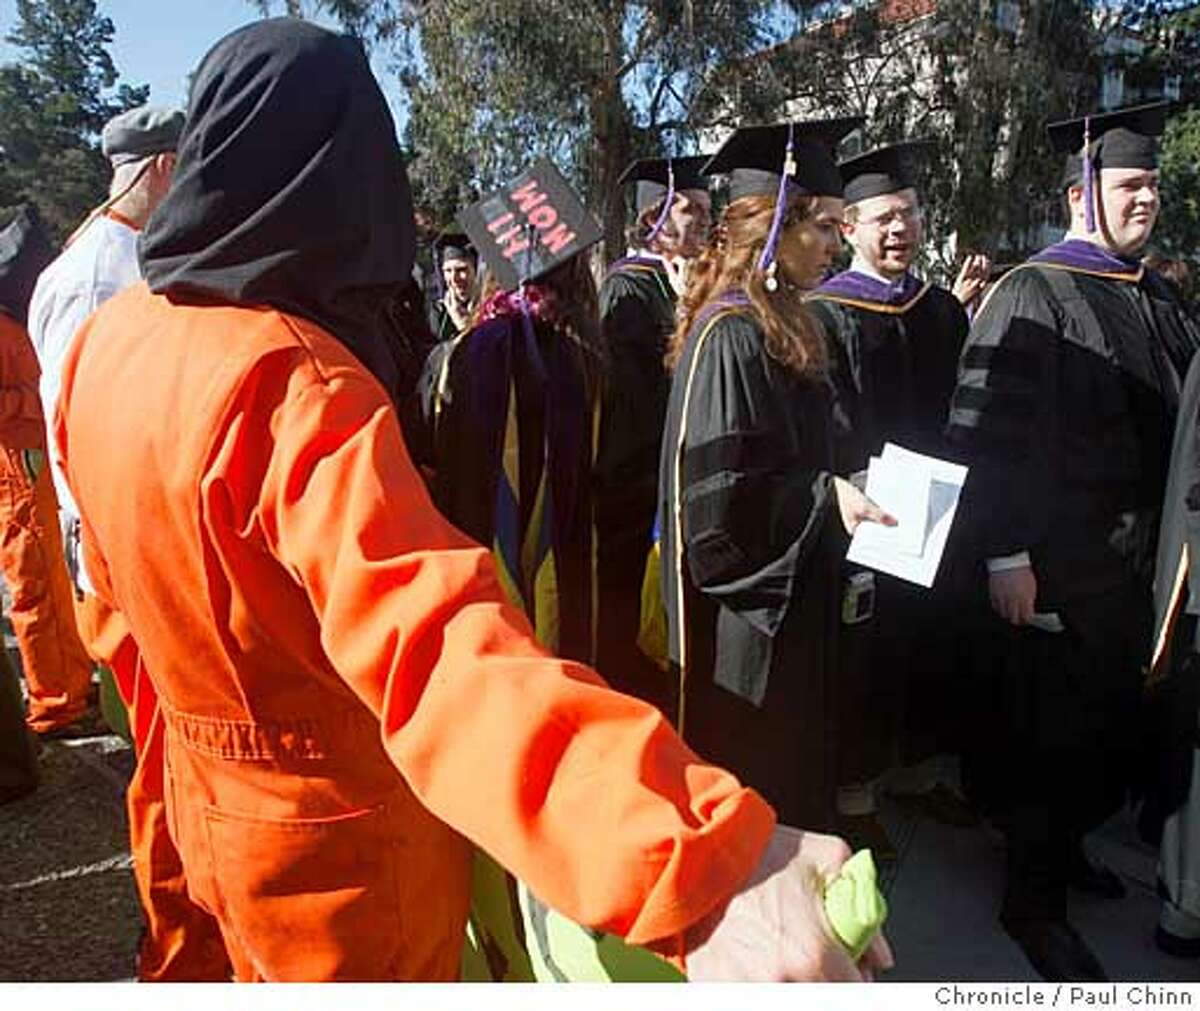 Boalt Law School graduates walk past anti-war protesters dressed as Guantanamo prisoners before graduation ceremonies in front of the Greek Theatre at UC Berkeley on Saturday, May 17, 2008. The demonstraters were denouncing law school professor John Yoo's participation in President Bush's terror policies. Photo by Paul Chinn / San Francisco Chronicle